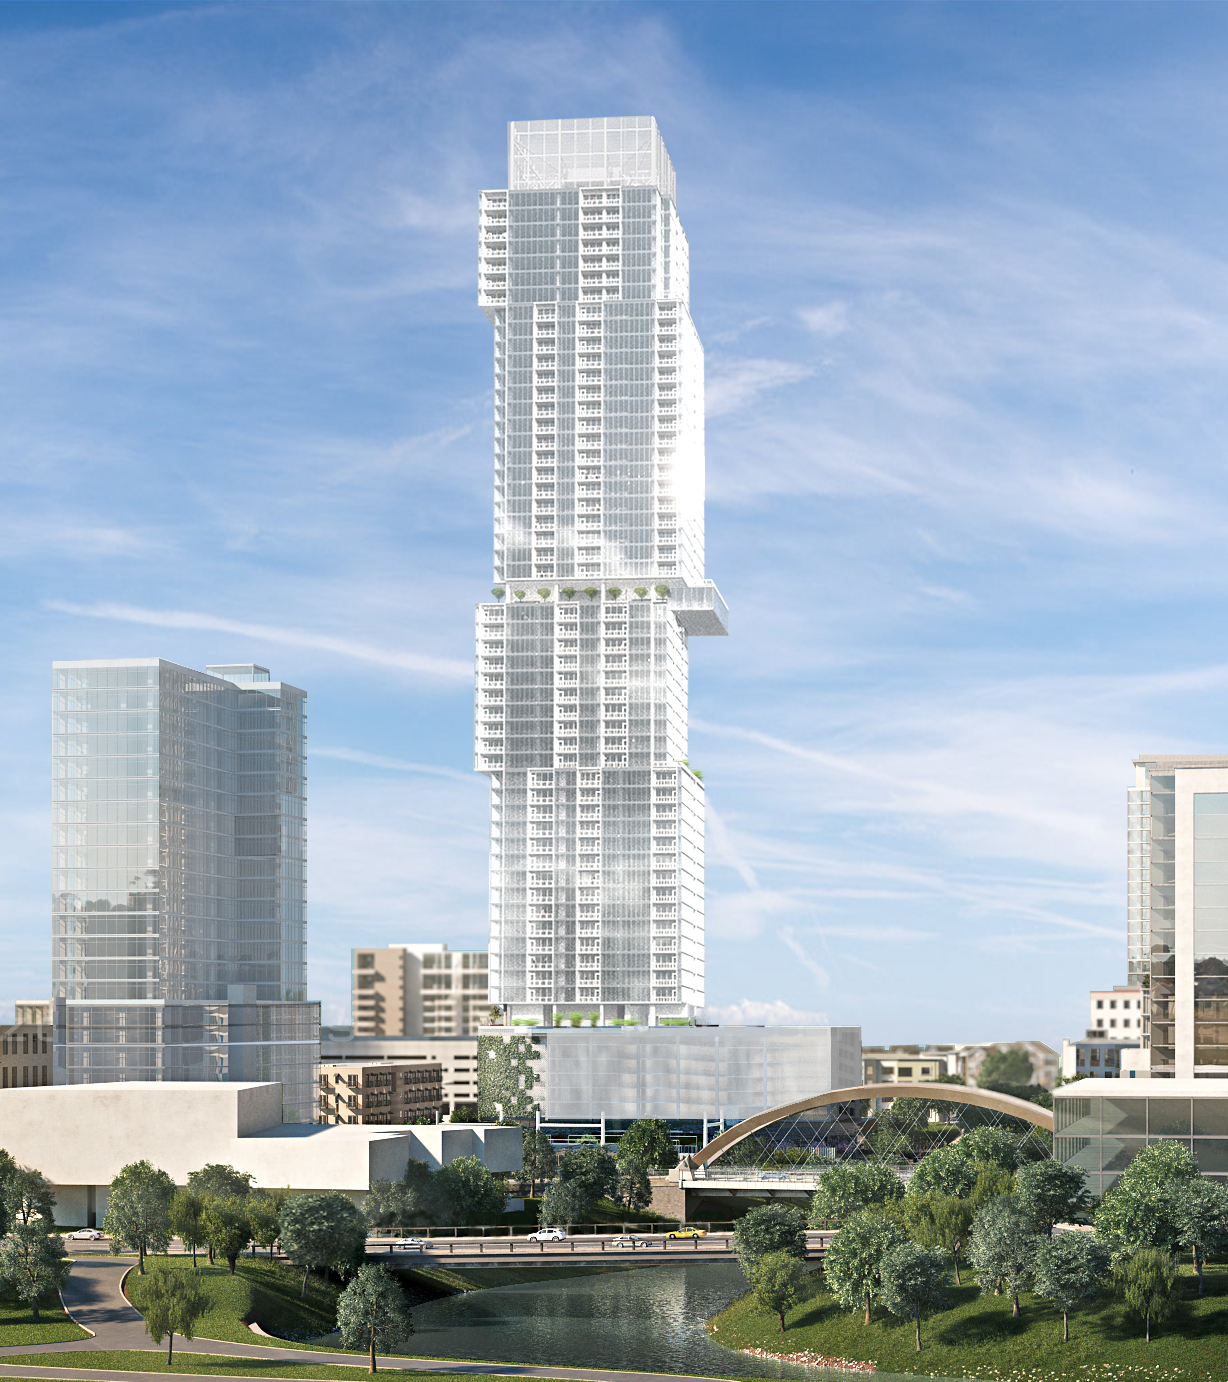 New Condo Tower, The Independent, to Be Tallest Building in Austin | Business Wire